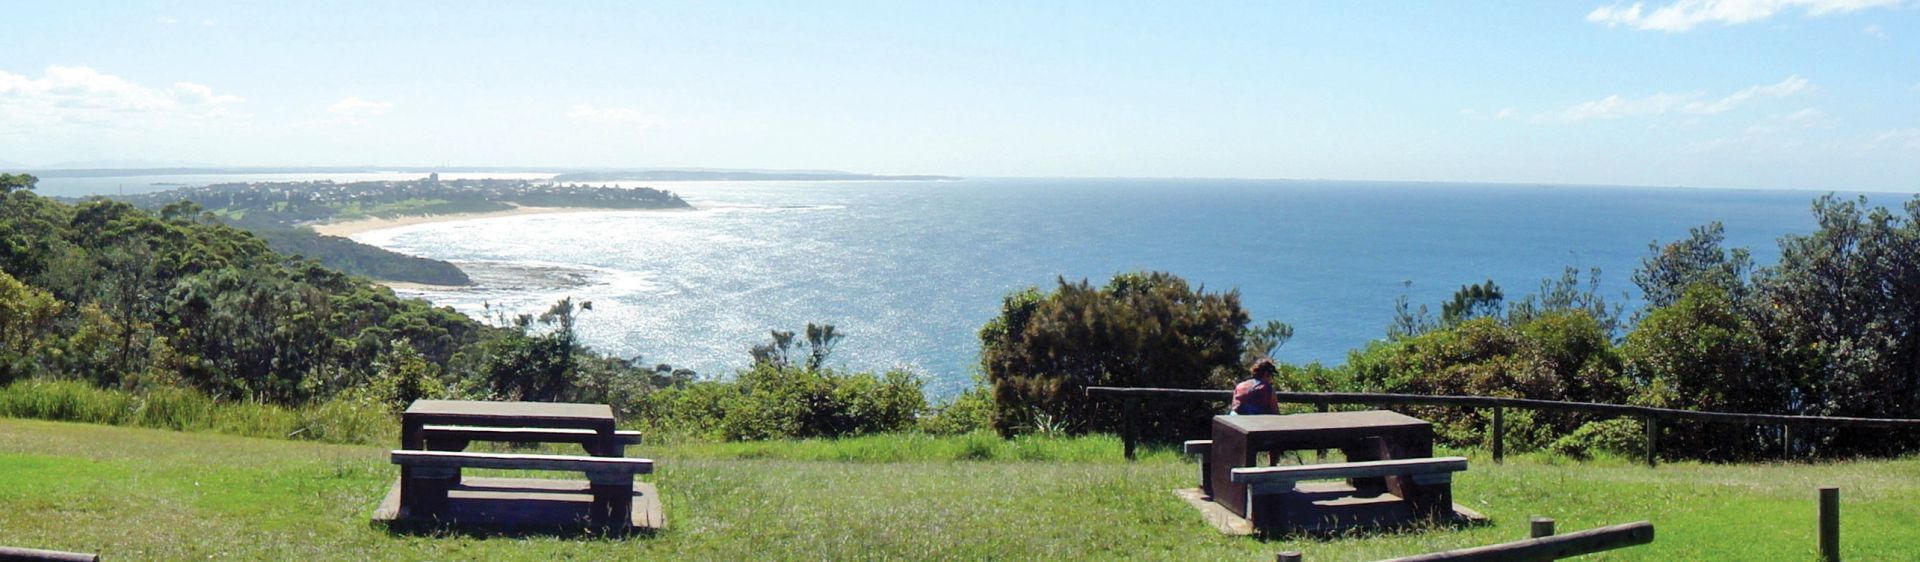 View from Crackneck Point Lookout at The Entrance on the NSW Central Coast